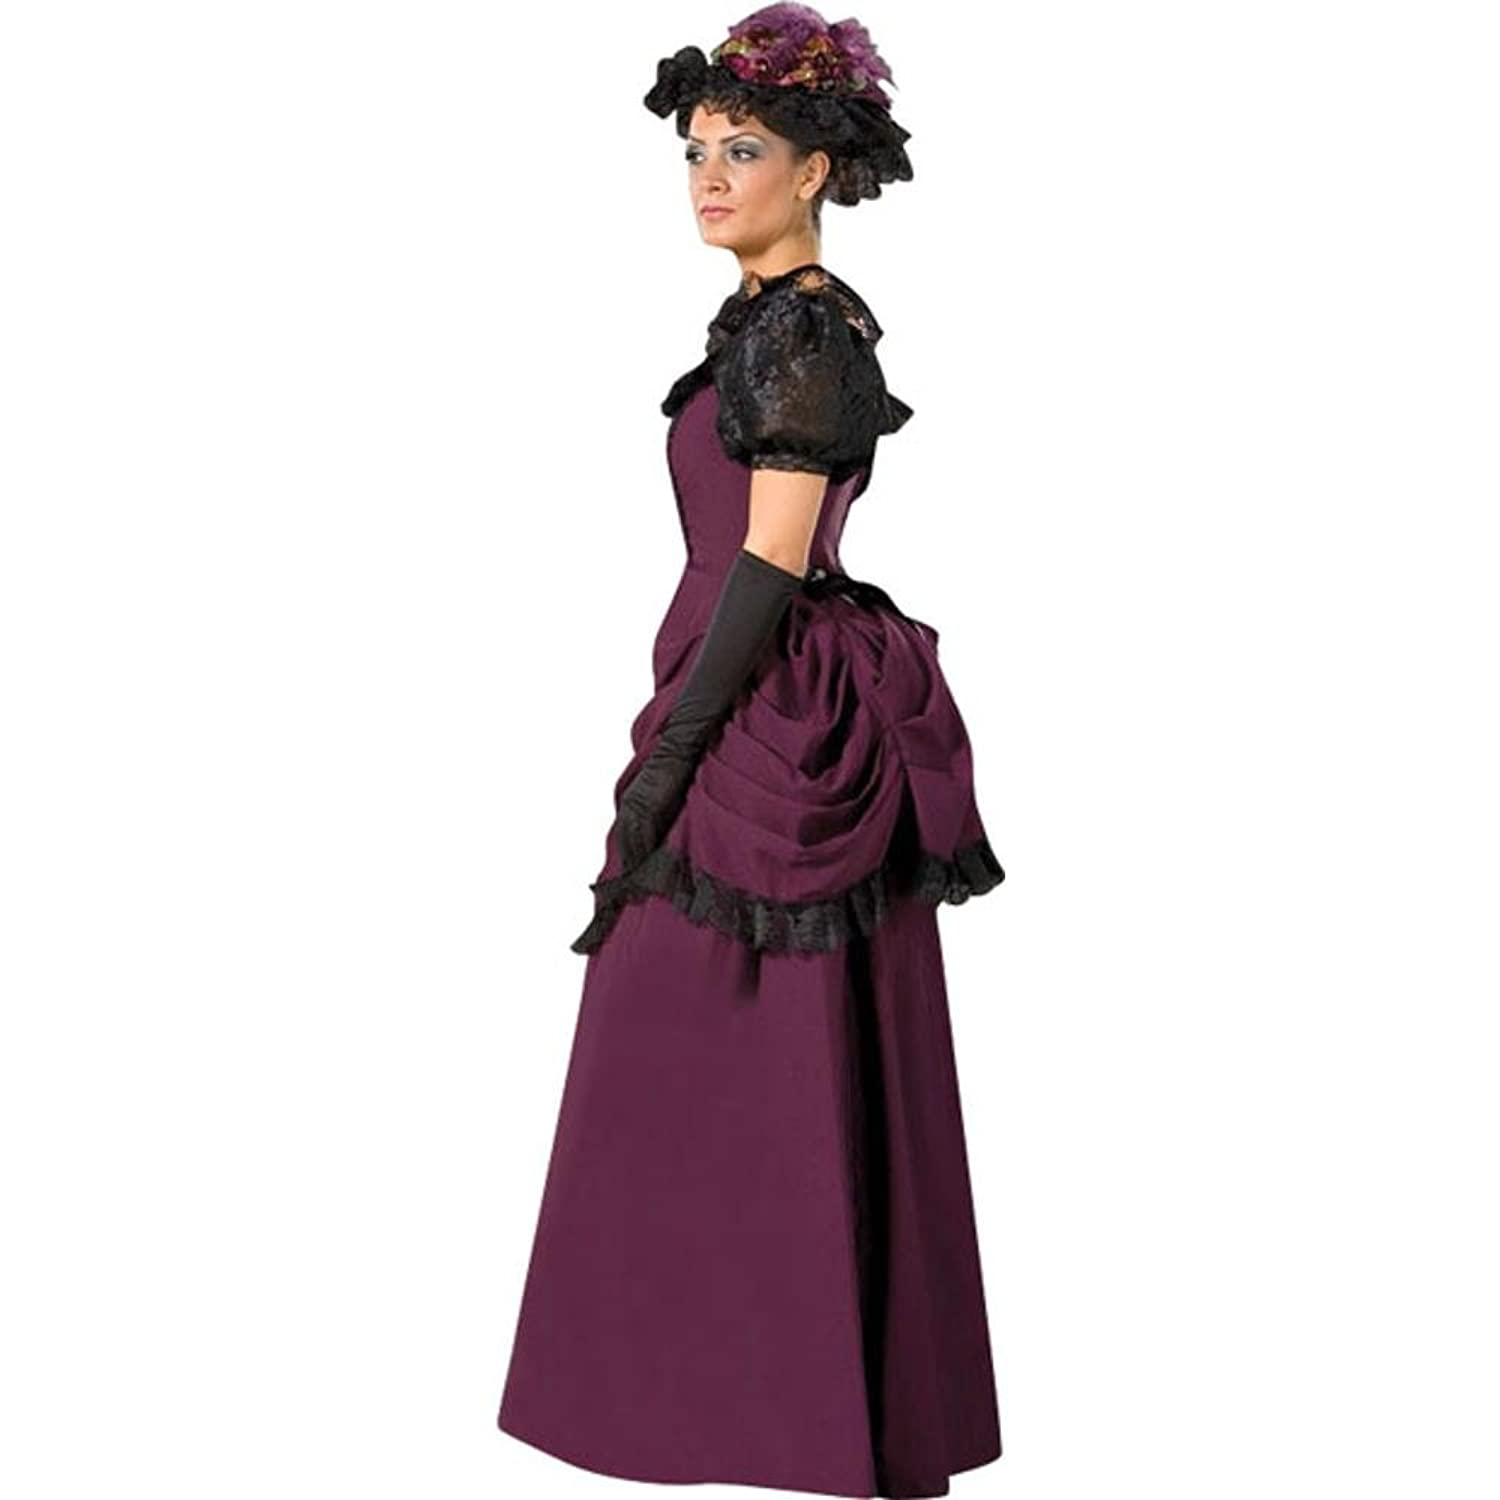 TitanicStyleDressesforSale Womens 19th Centry Victorian Dress Theater Costume $253.99 AT vintagedancer.com